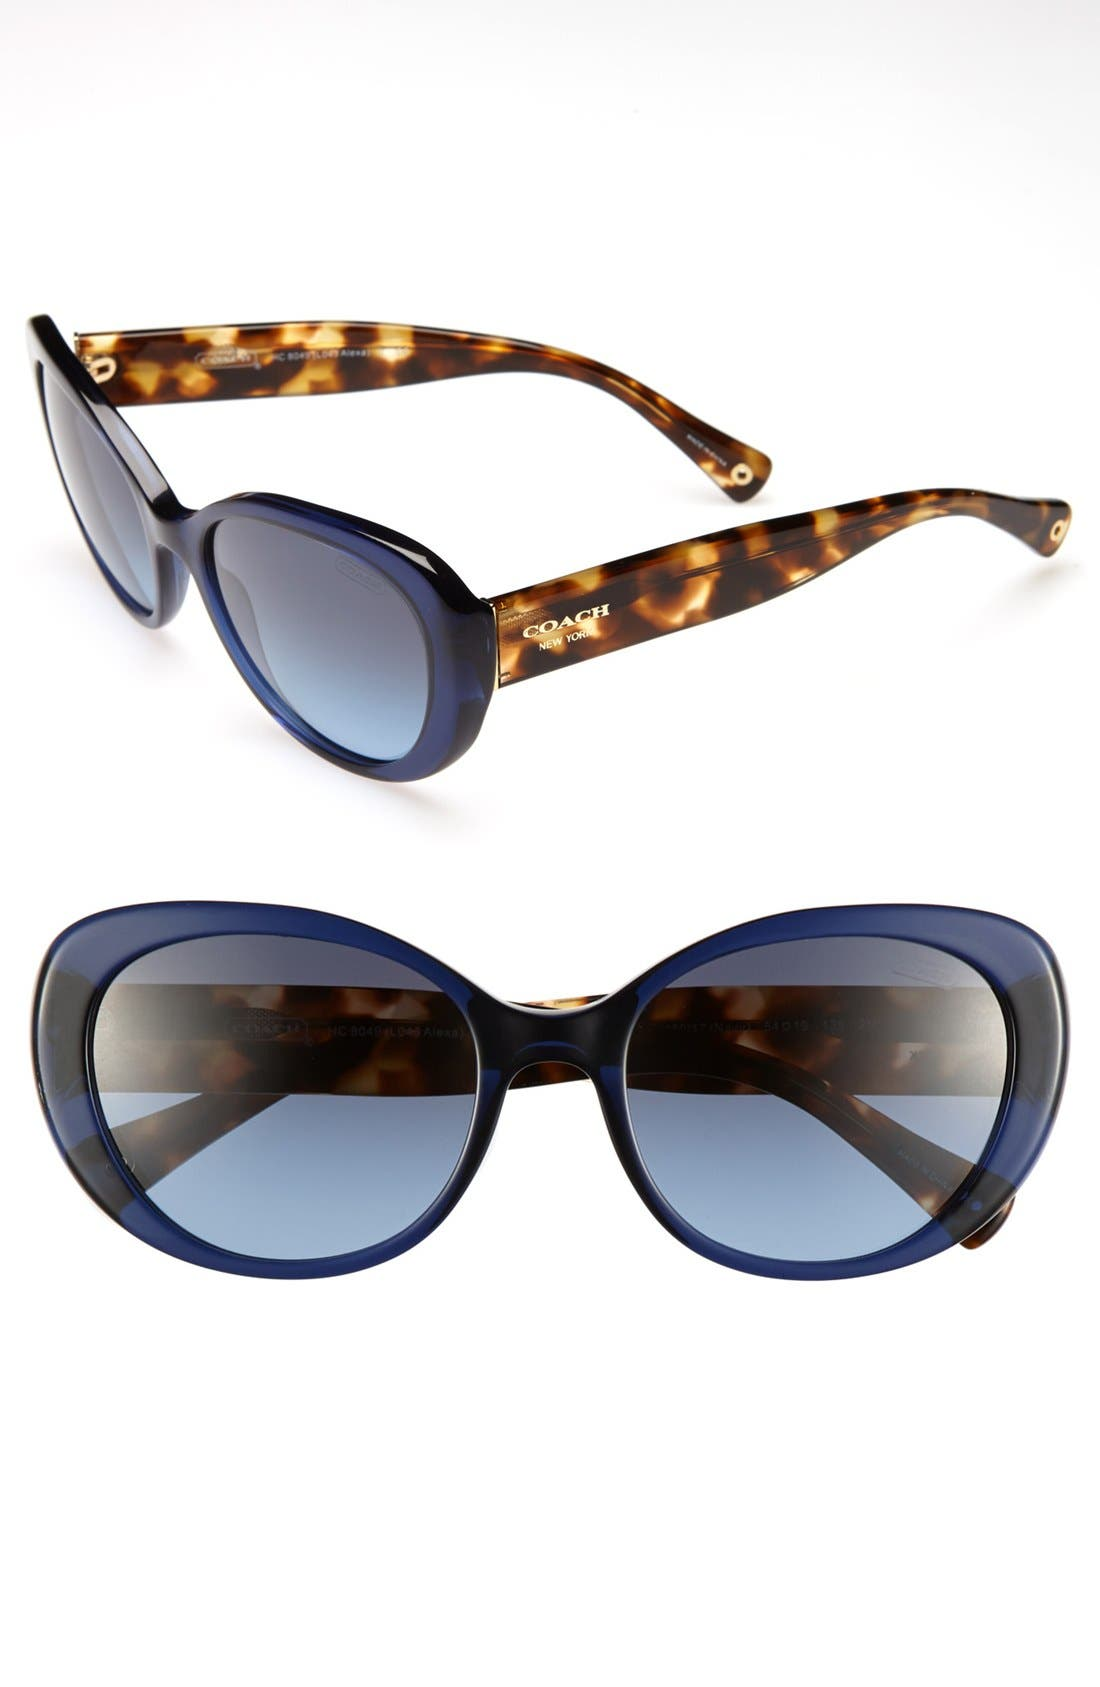 Main Image - COACH 'Alexa' 54mm Sunglasses